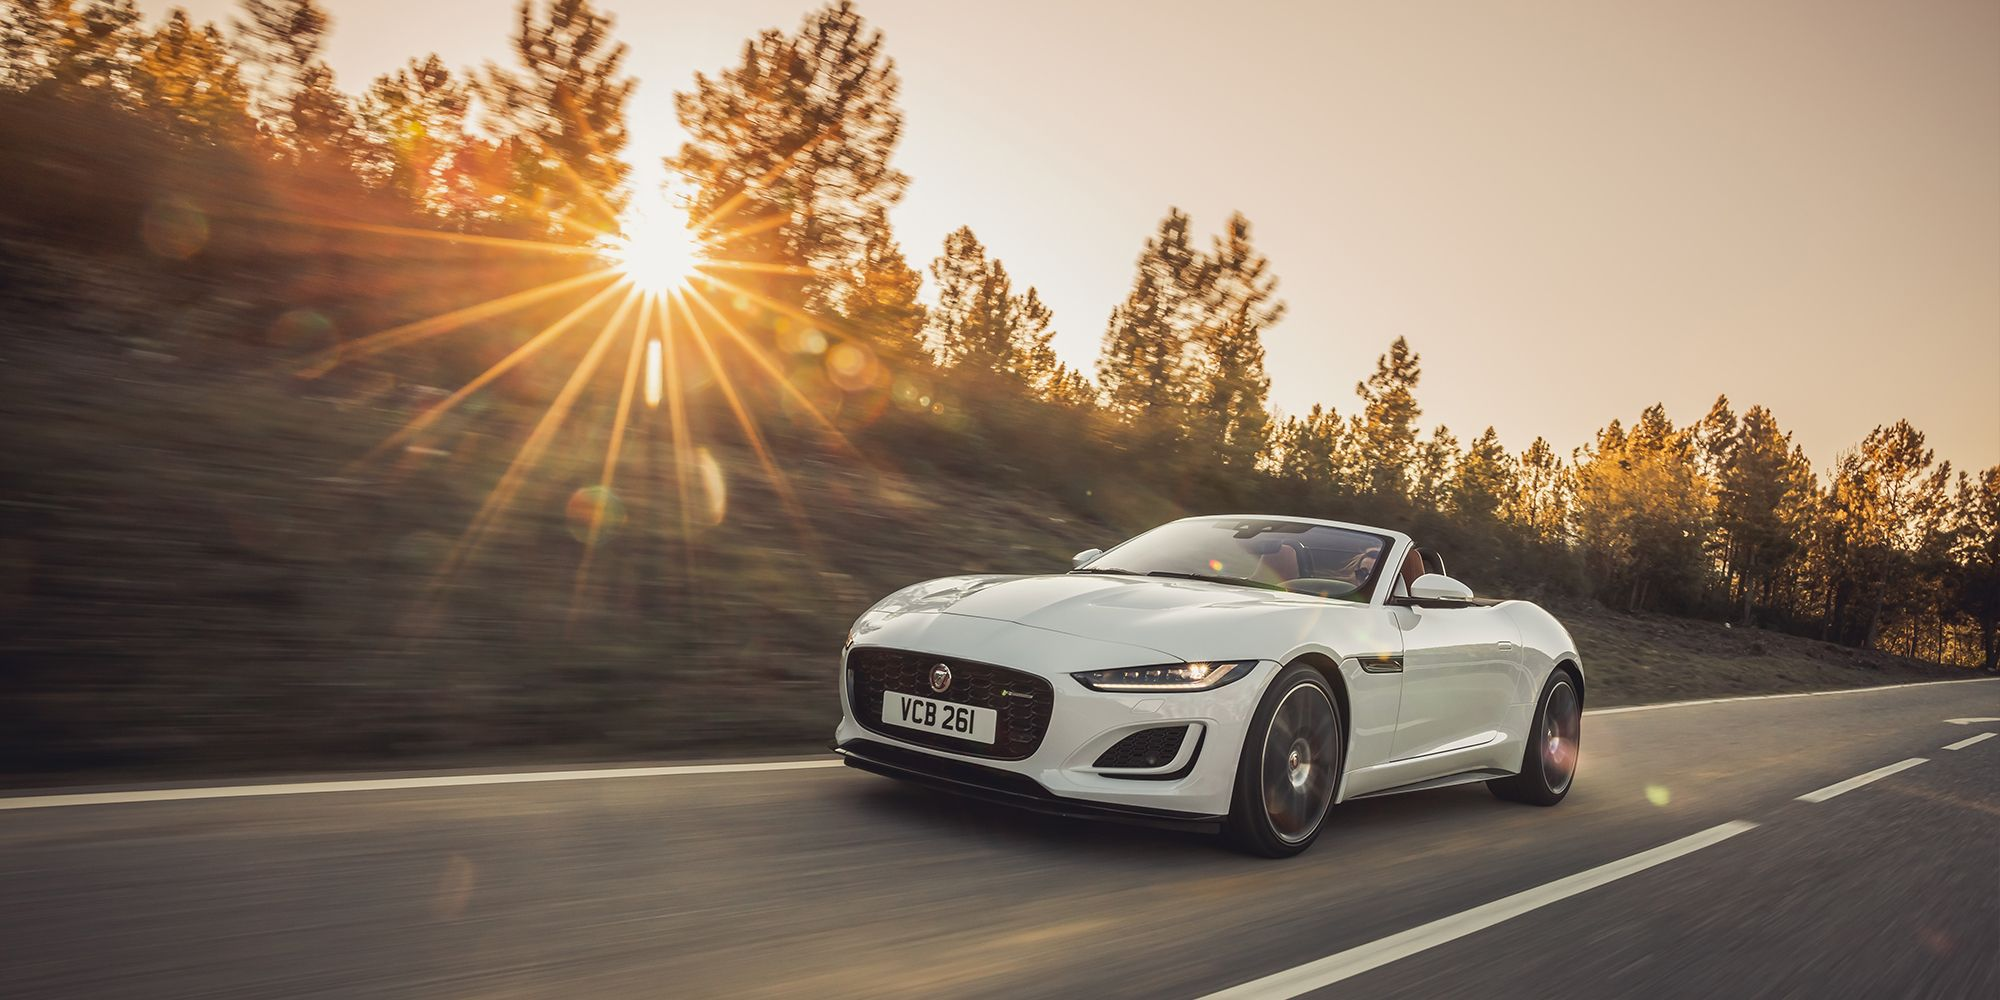 2022 Jaguar F-Type: Costs, Facts, And Figures